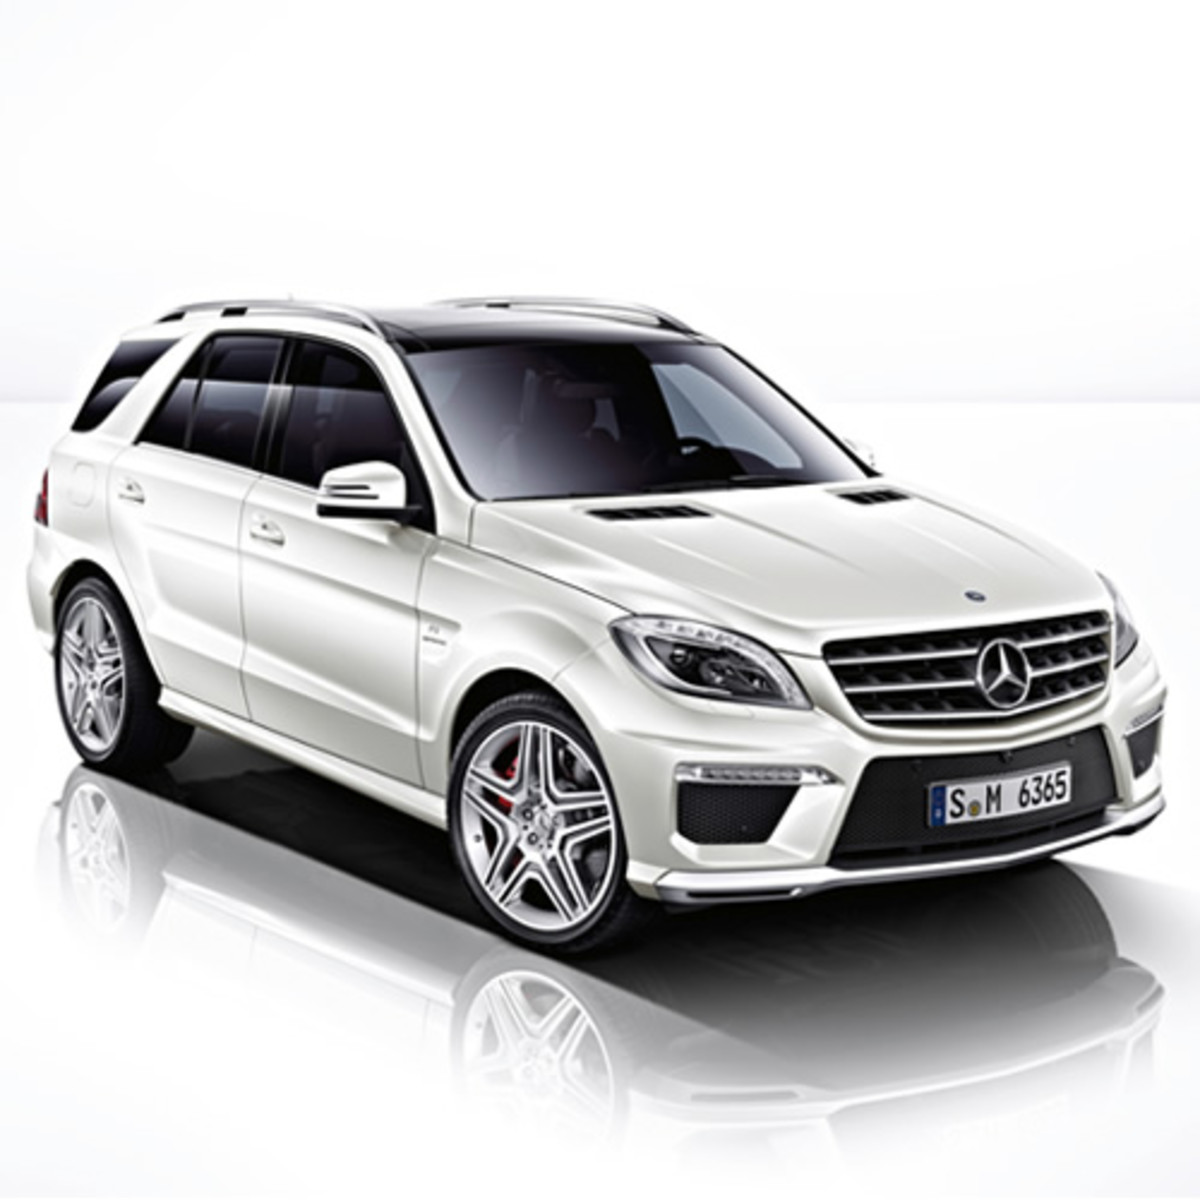 You May Want To Think Twice About Calling Mercedesu0027 Newest ML A Grocery  Hauler. For Their 2012 ML63 AMG, Merc Has Dropped A 5.5L V8 Biturbo Under  The Hood ...